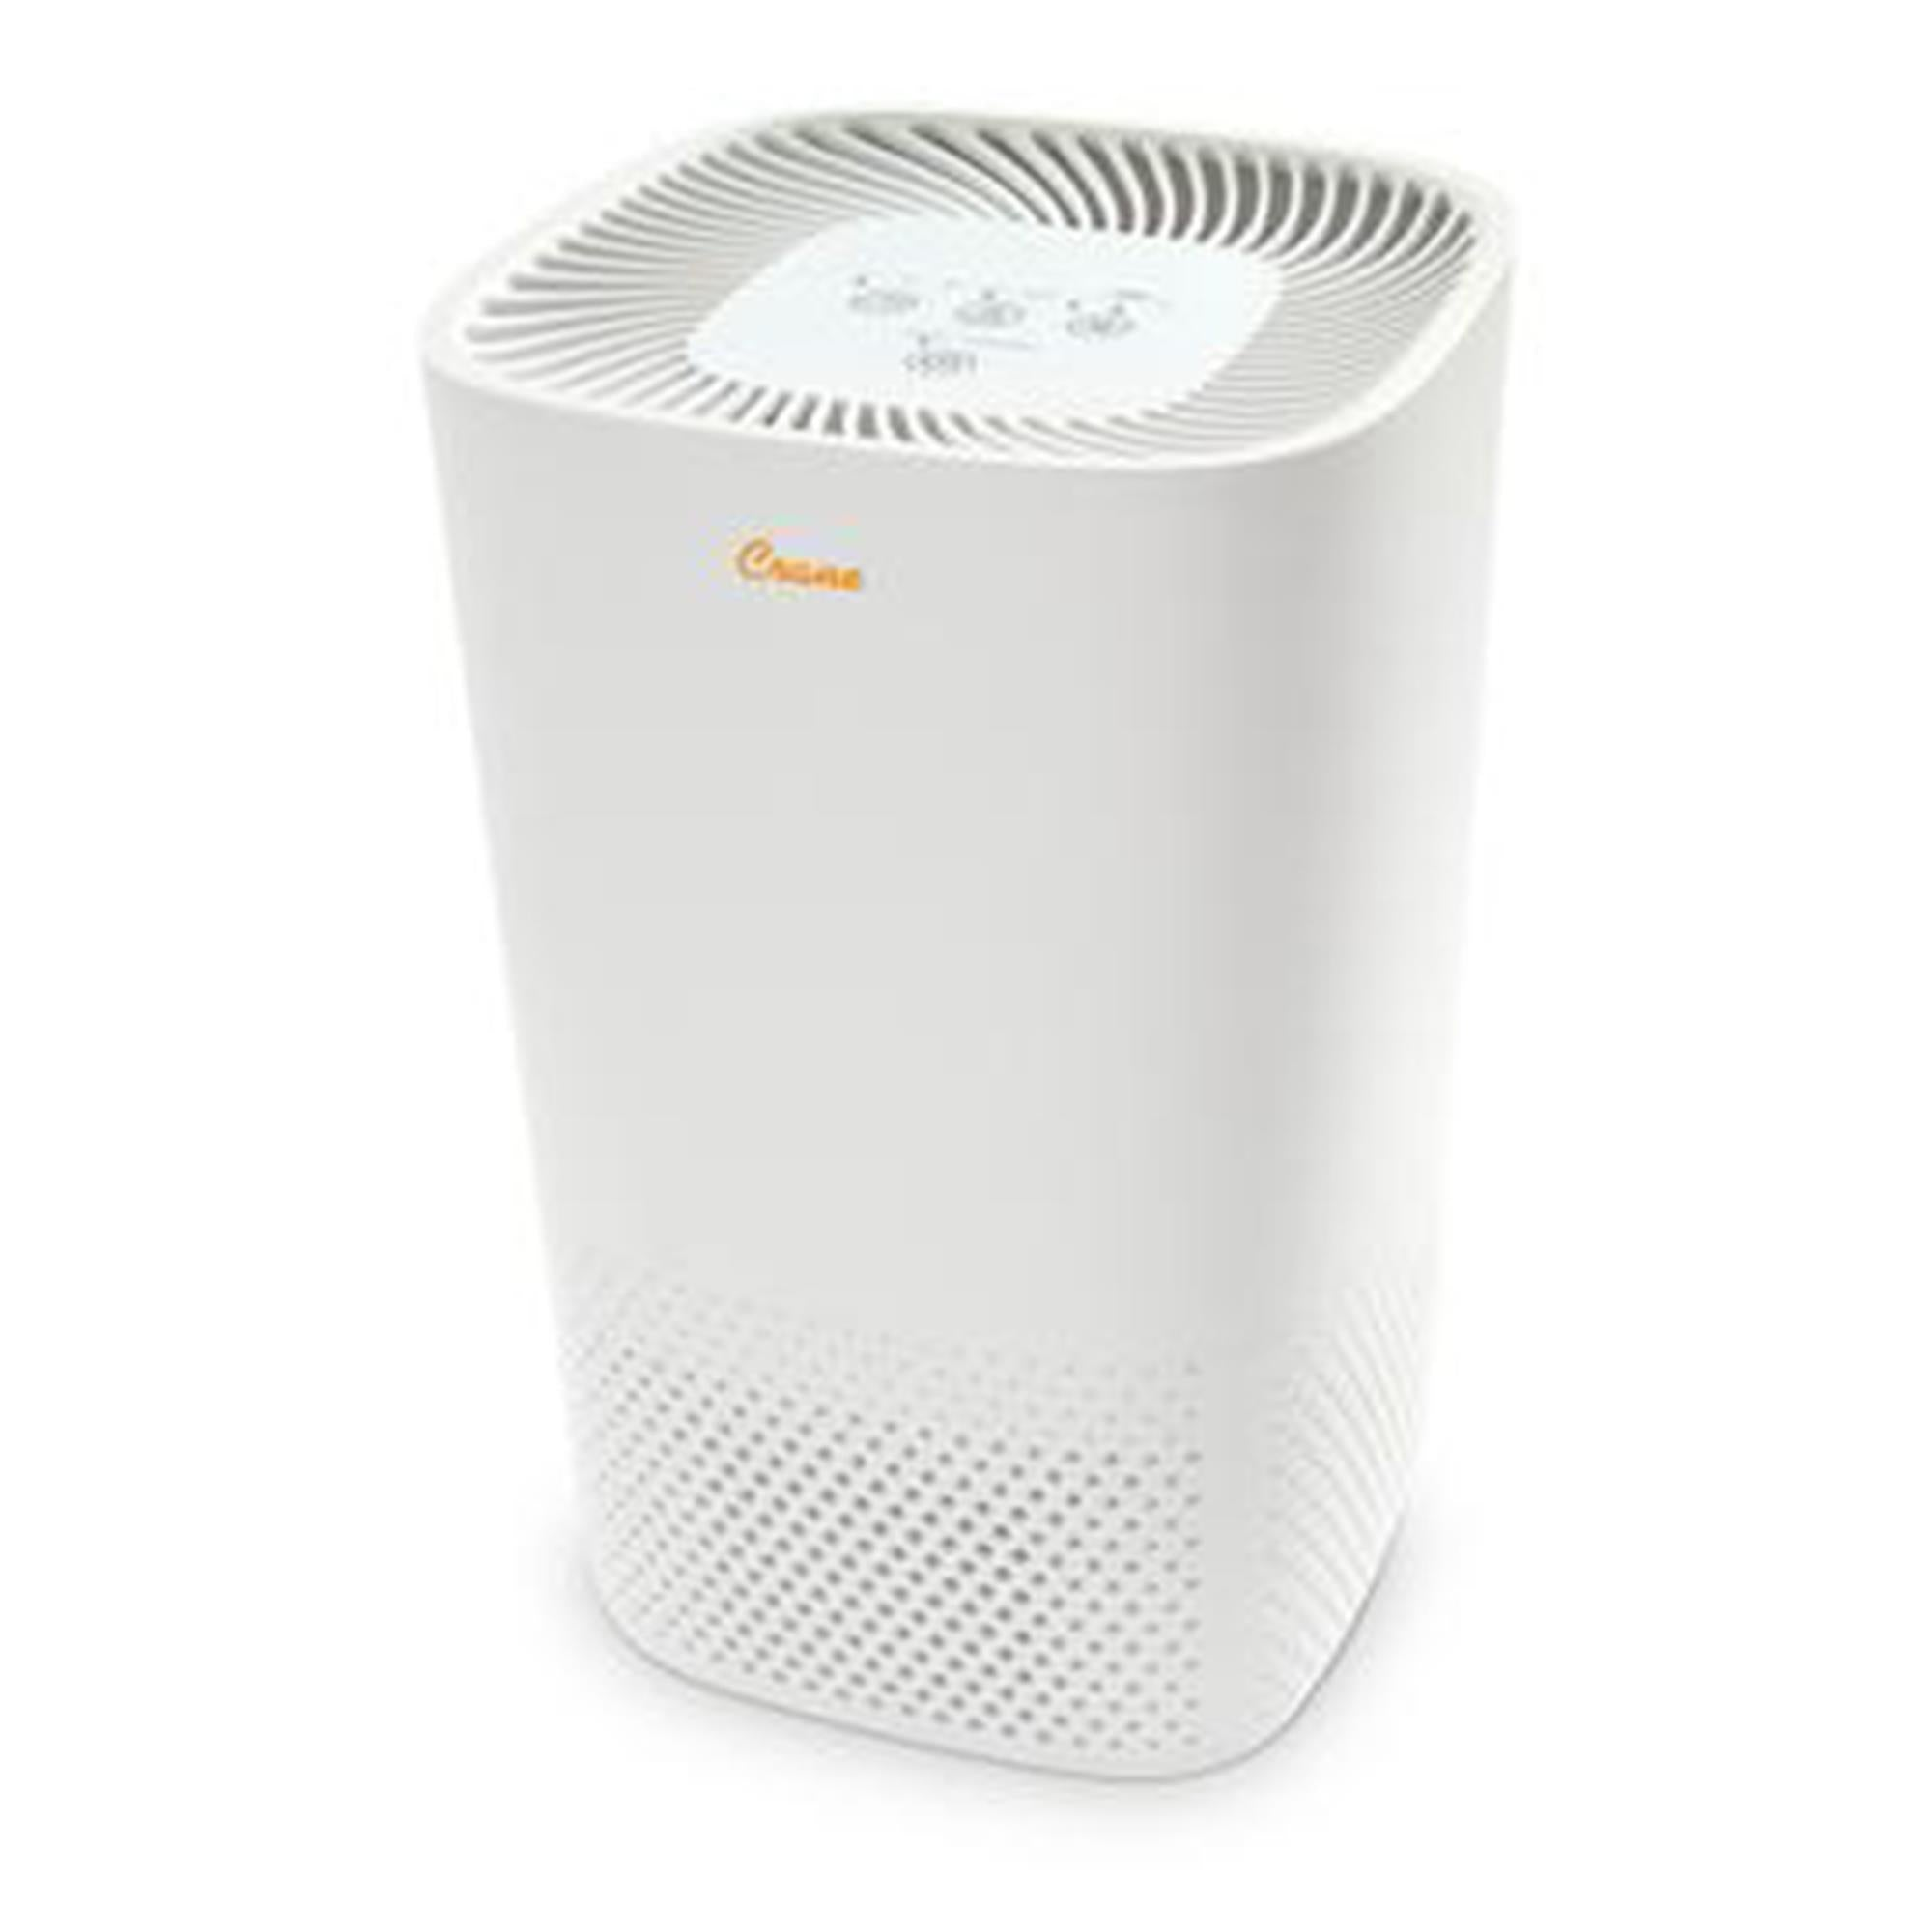 Crane Standard Air Purifier